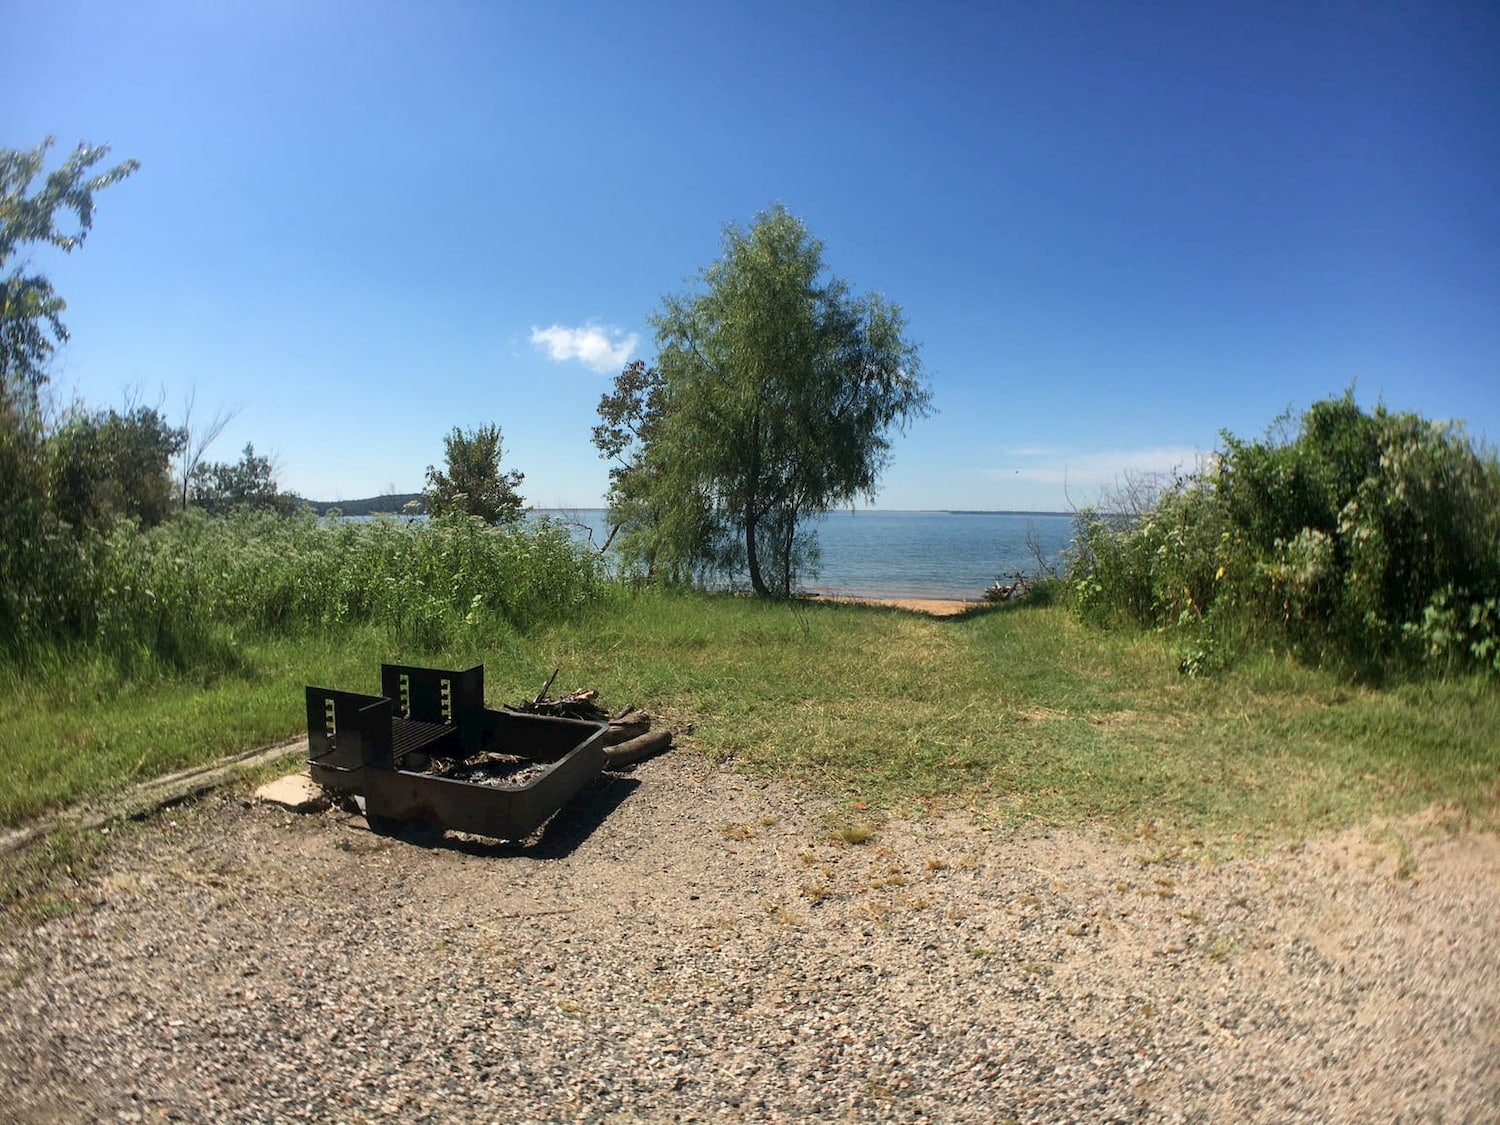 grassy field and fire pit at campsite